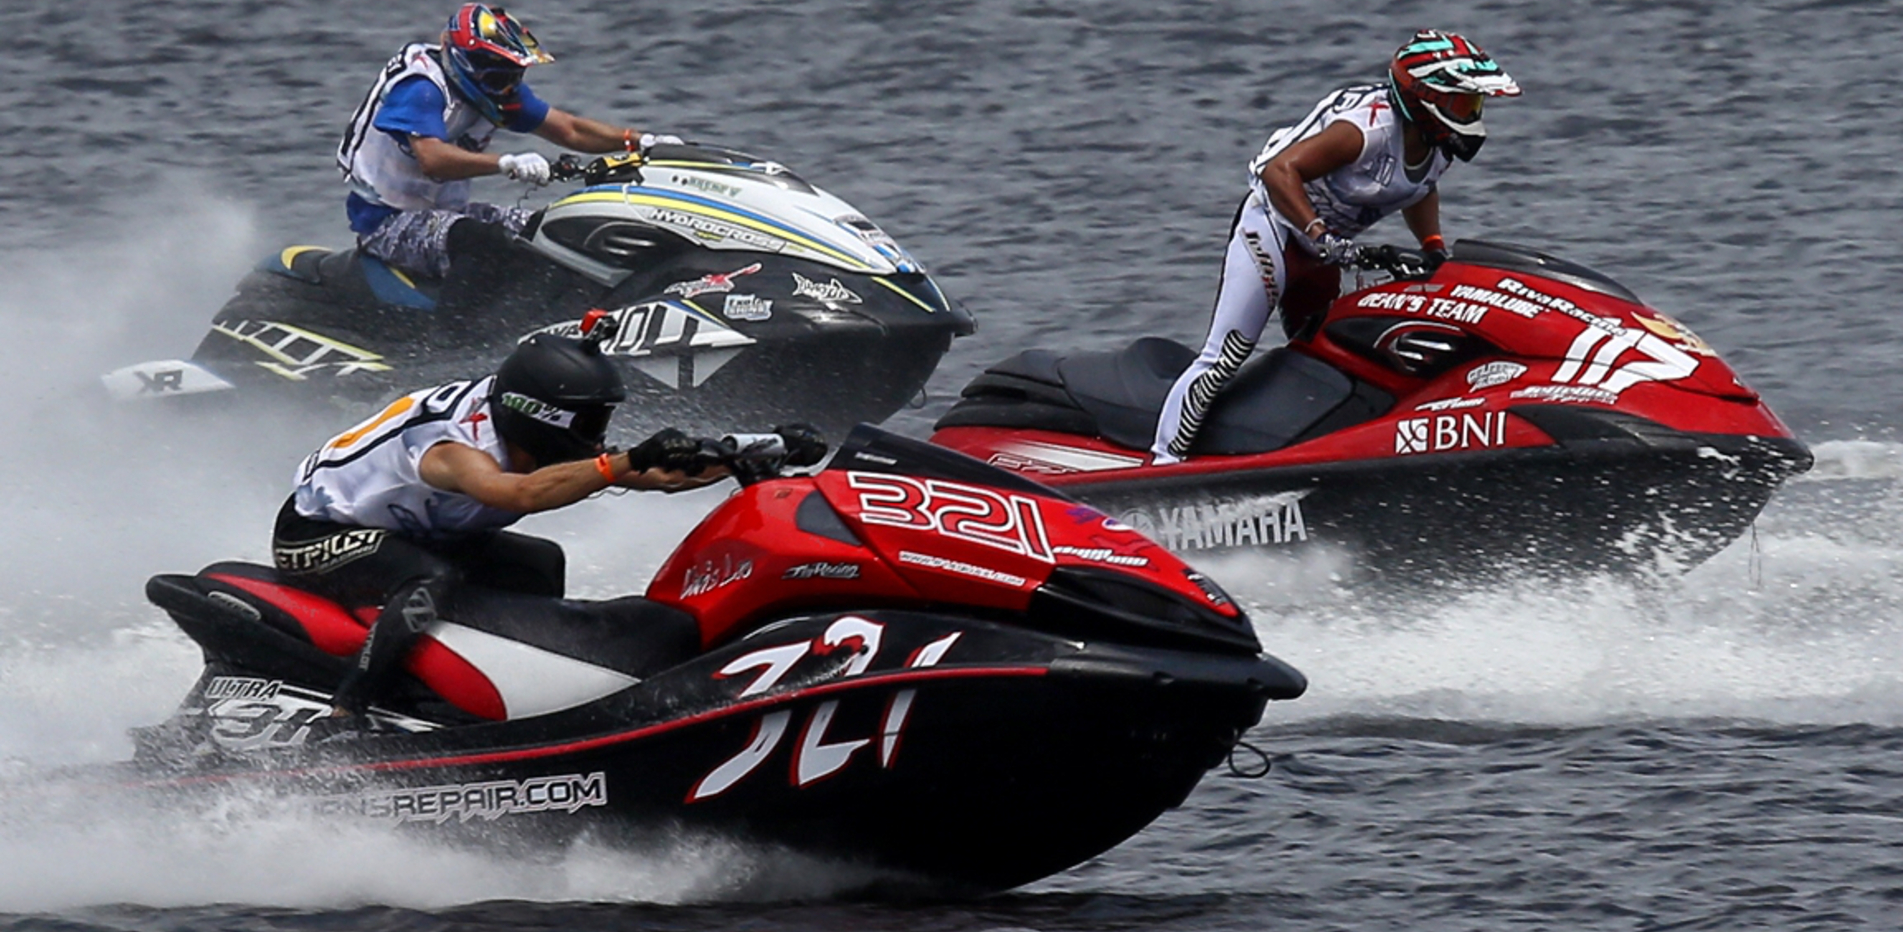 P1 AquaX - The World's Most Exciting JetSki Competitions!